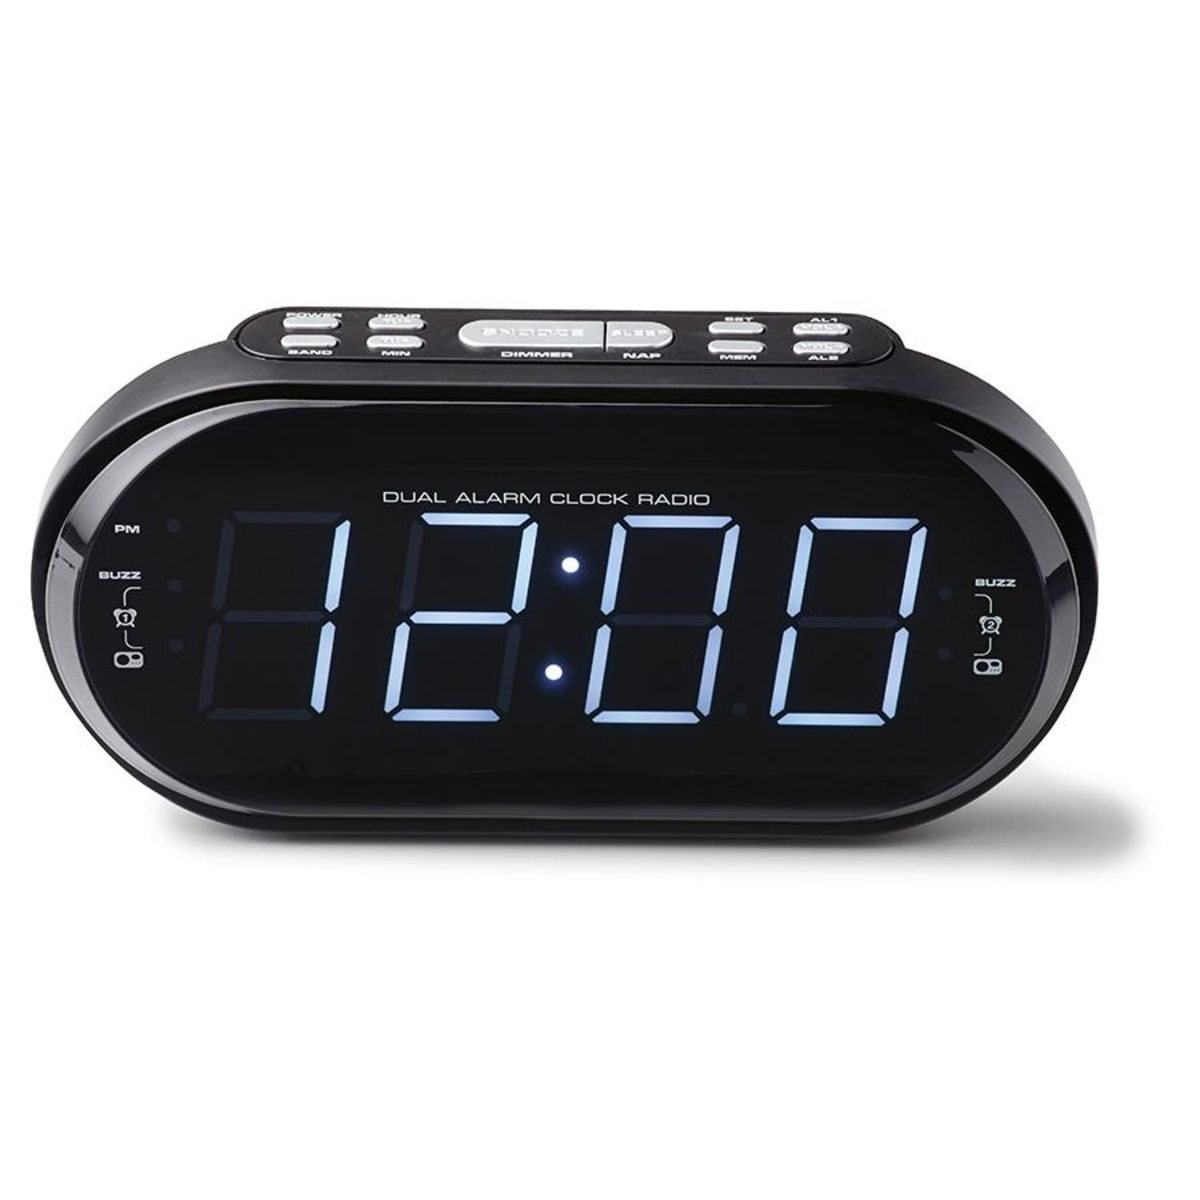 audiosonic big display alarm clock instructions